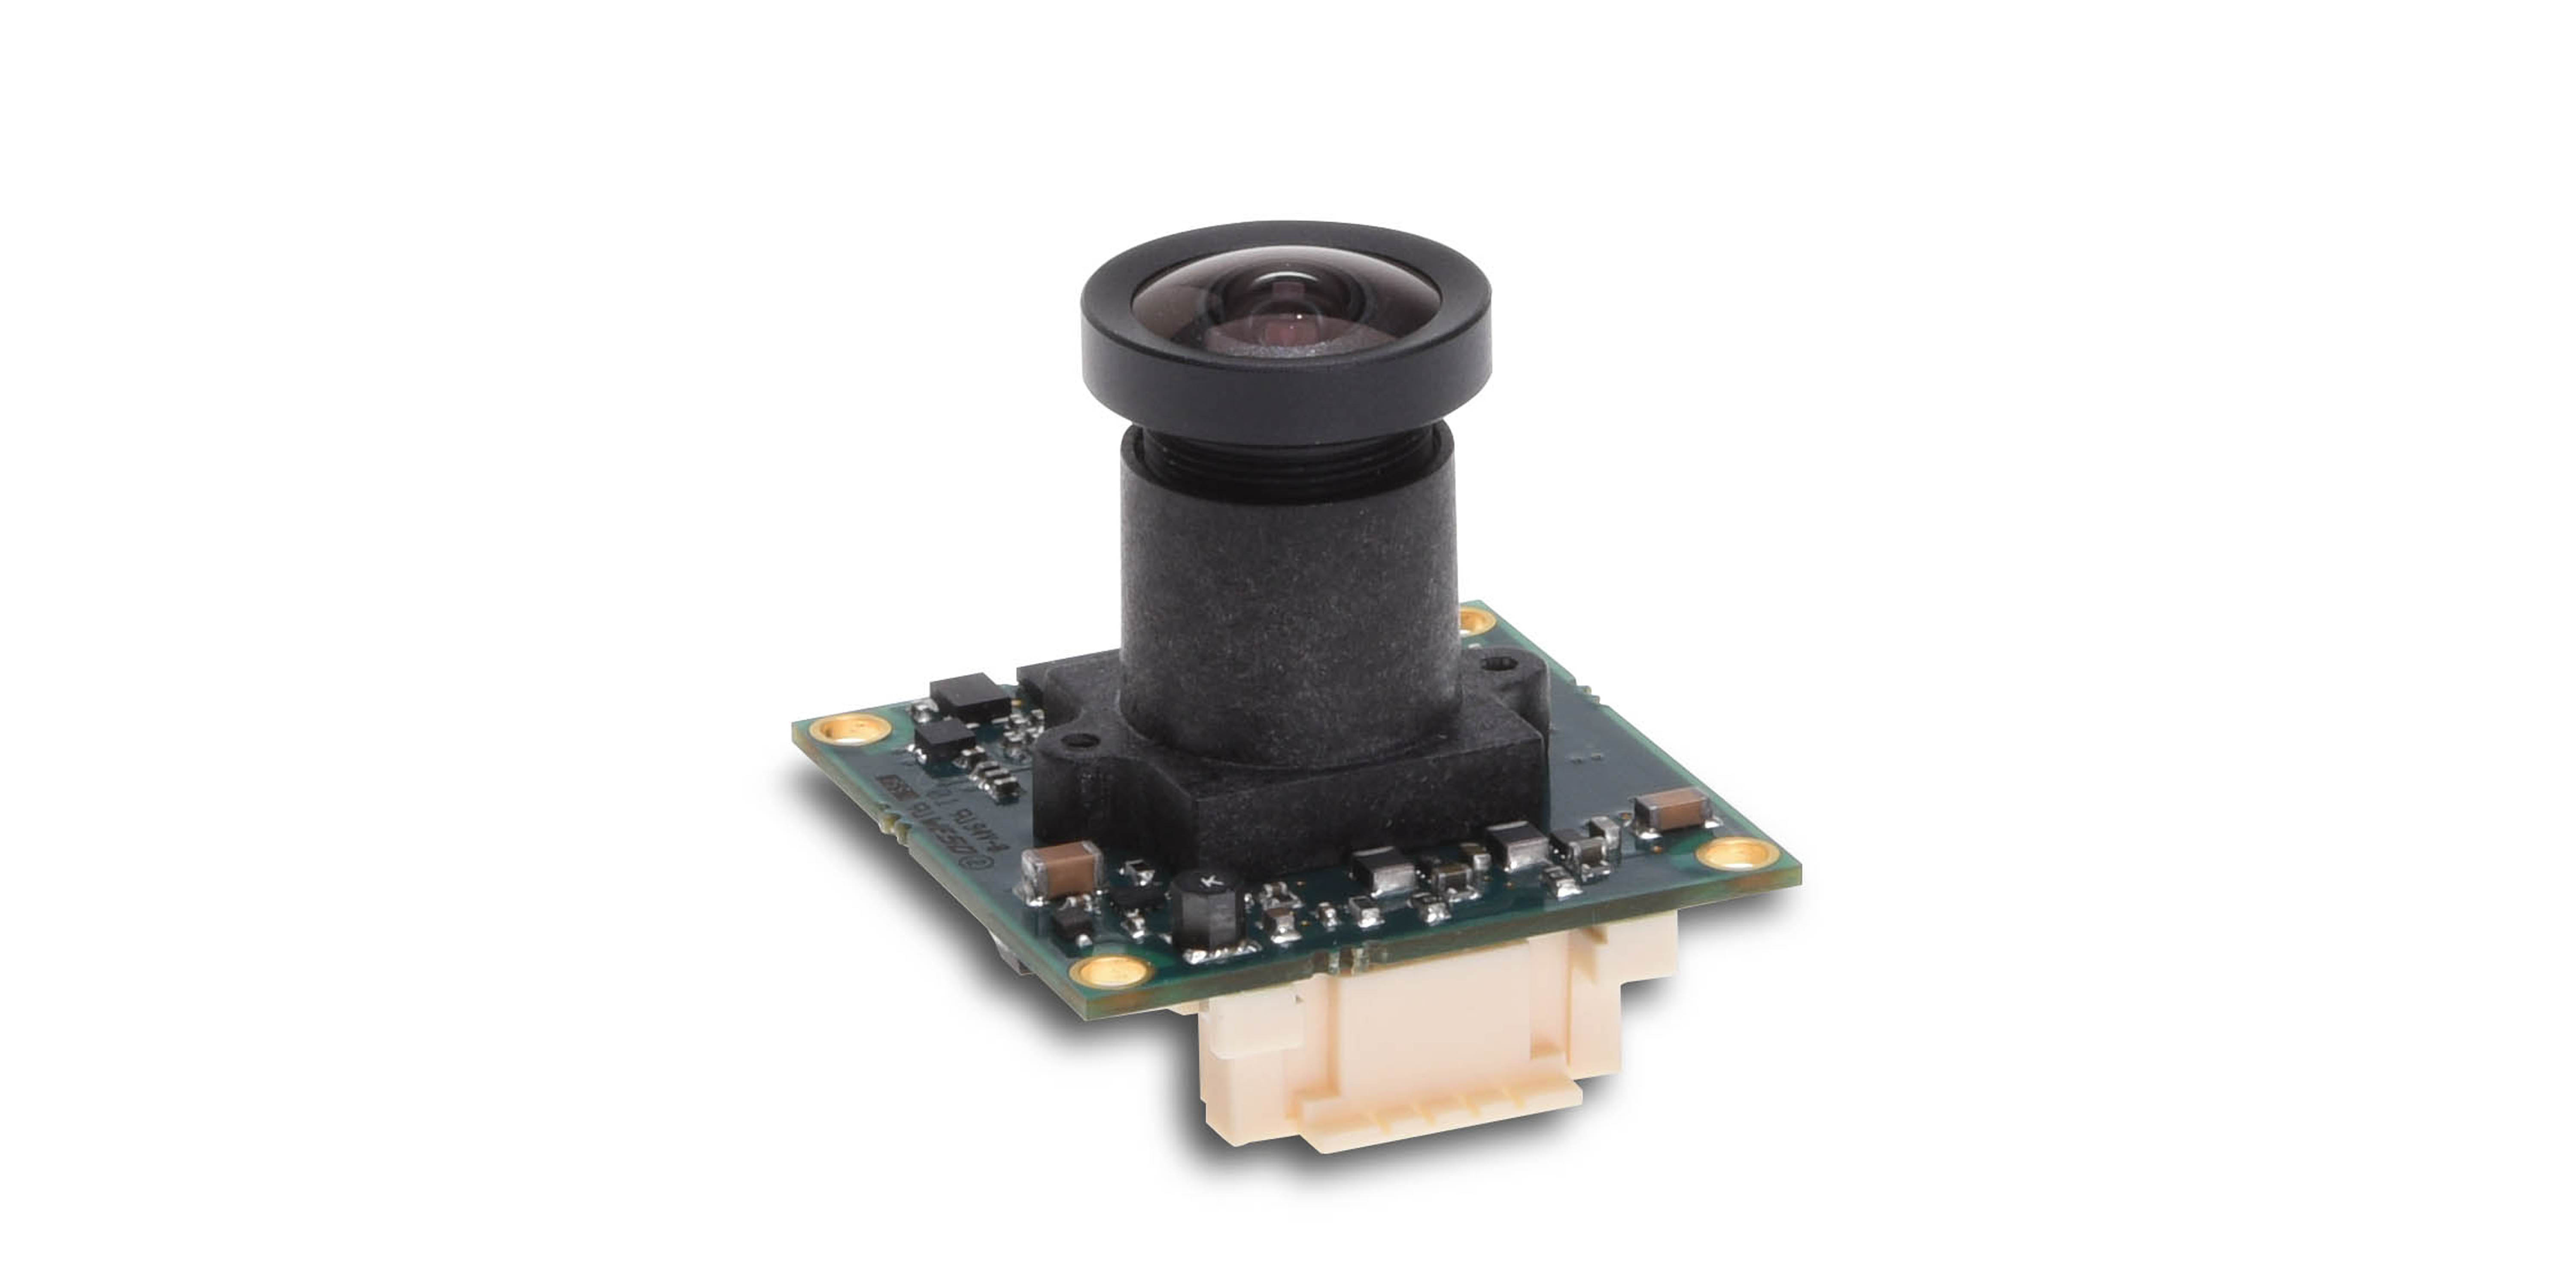 CMOS camera board solution for OEM's